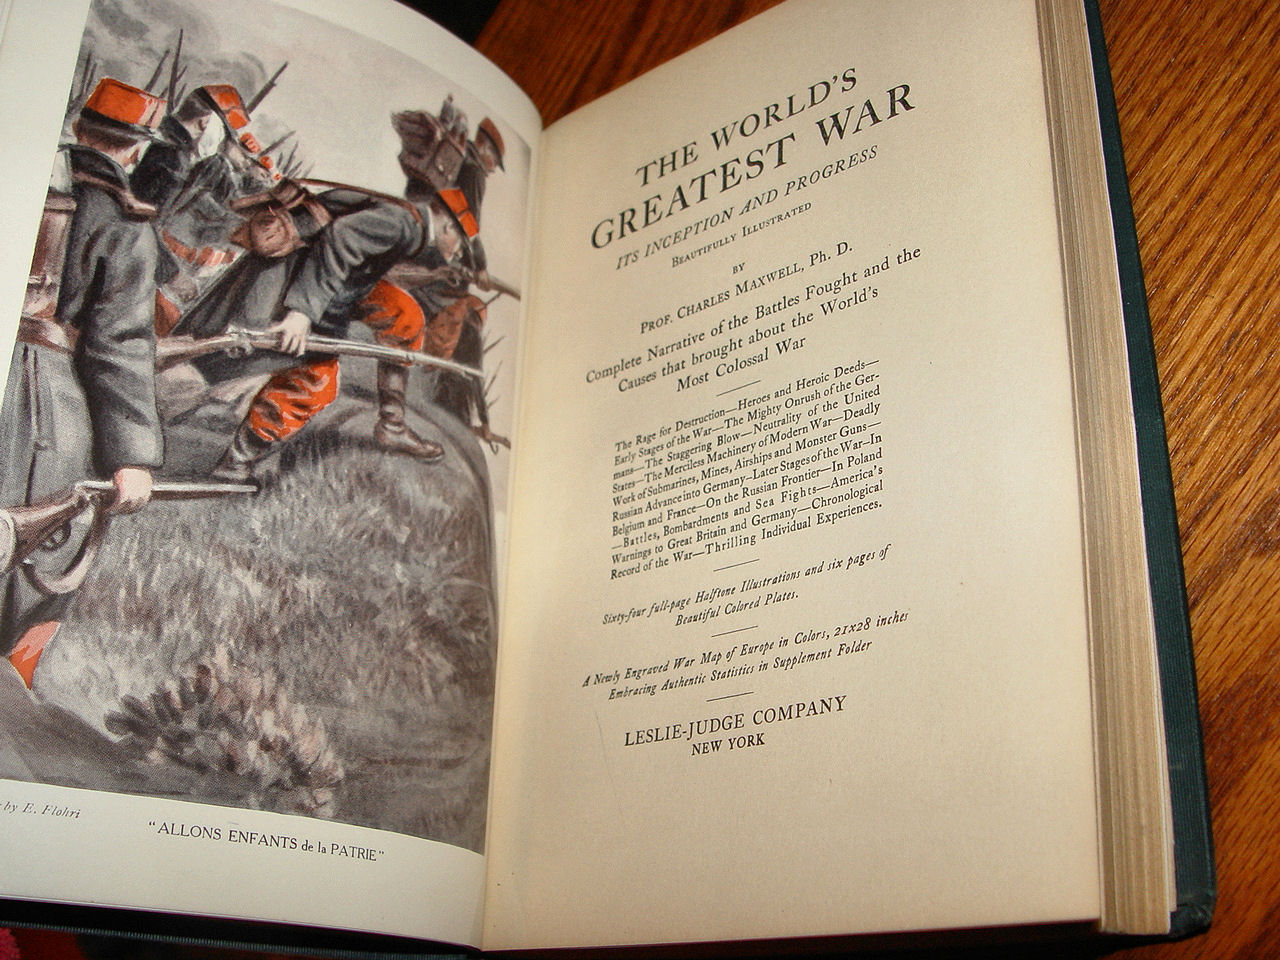 The World's                                                 Greatest War: Its                                                 Inception and Progress                                                 Beautifully Illustrated.                                                 Maxwell, Charles.                                                 Published by New York:                                                 Leslie-Judge, (1915)